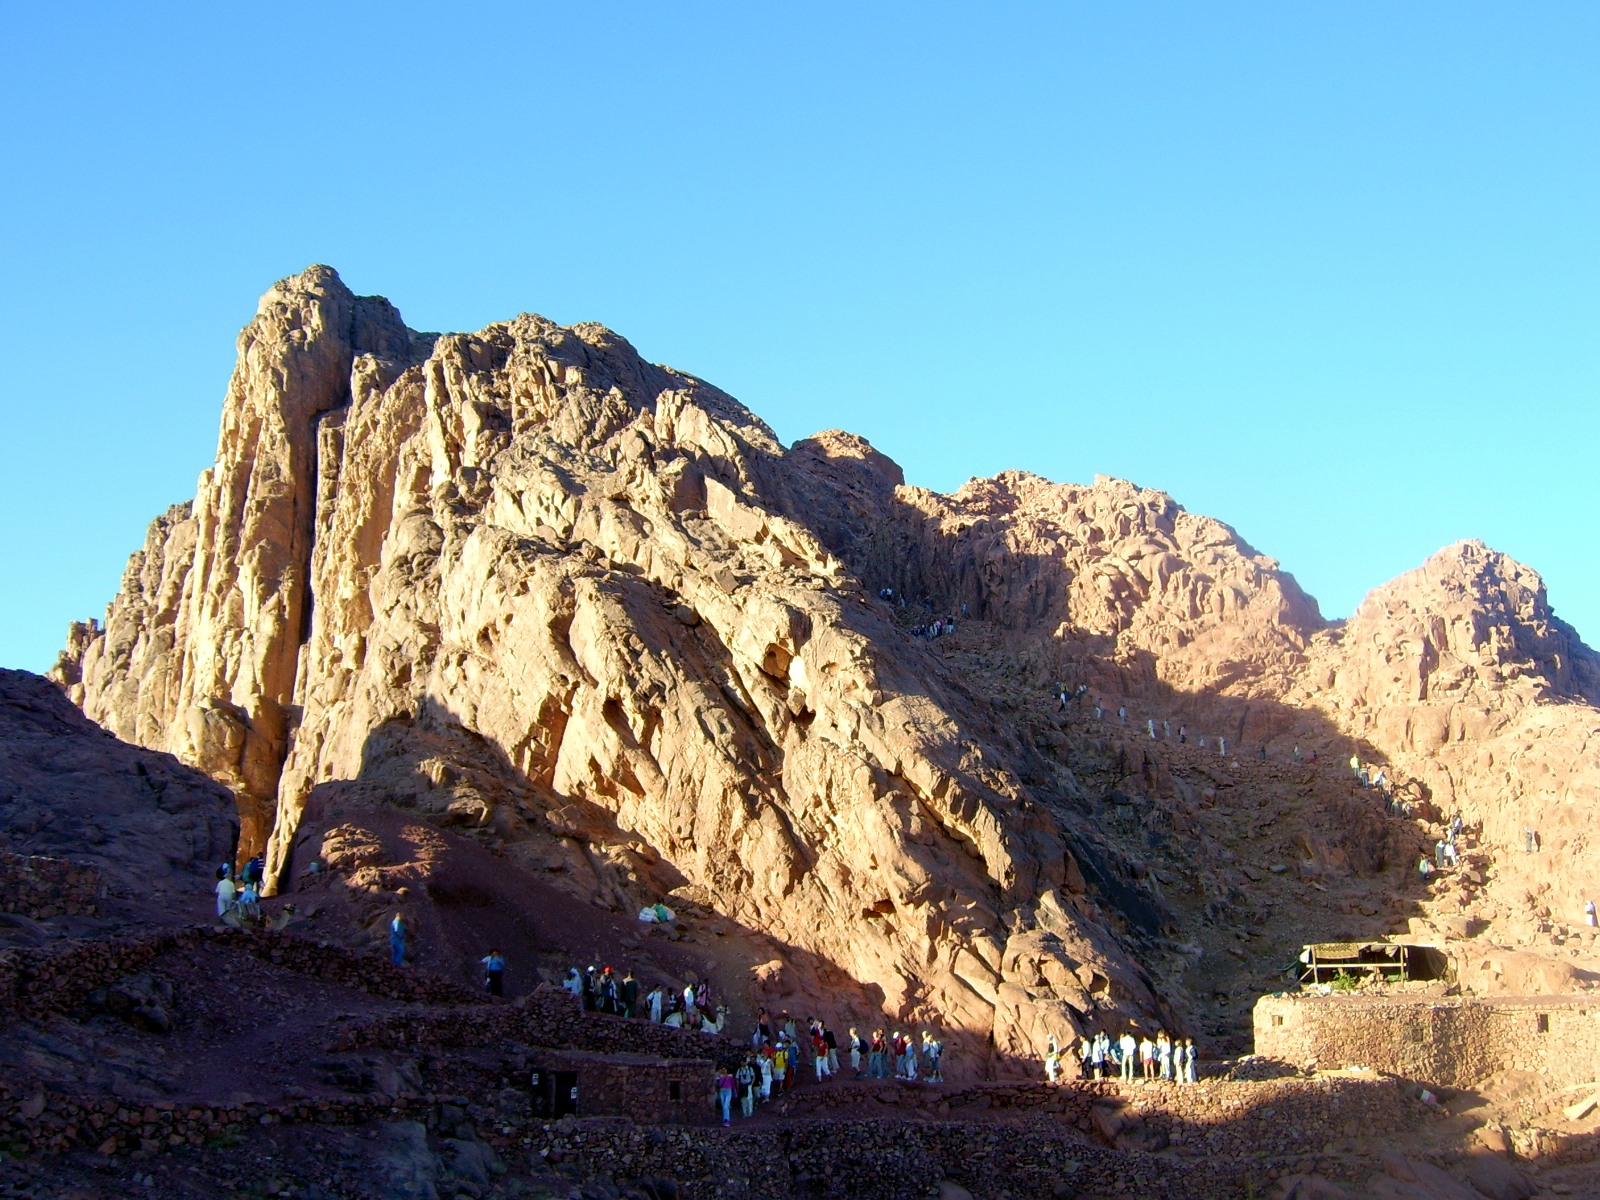 """Mount Sinai Egypt"""" by Original uploader was Tamerlan at pl.wikipedia - Transferred from pl.wikipedia. Licensed under Public domain via Wikimedia Commons."""